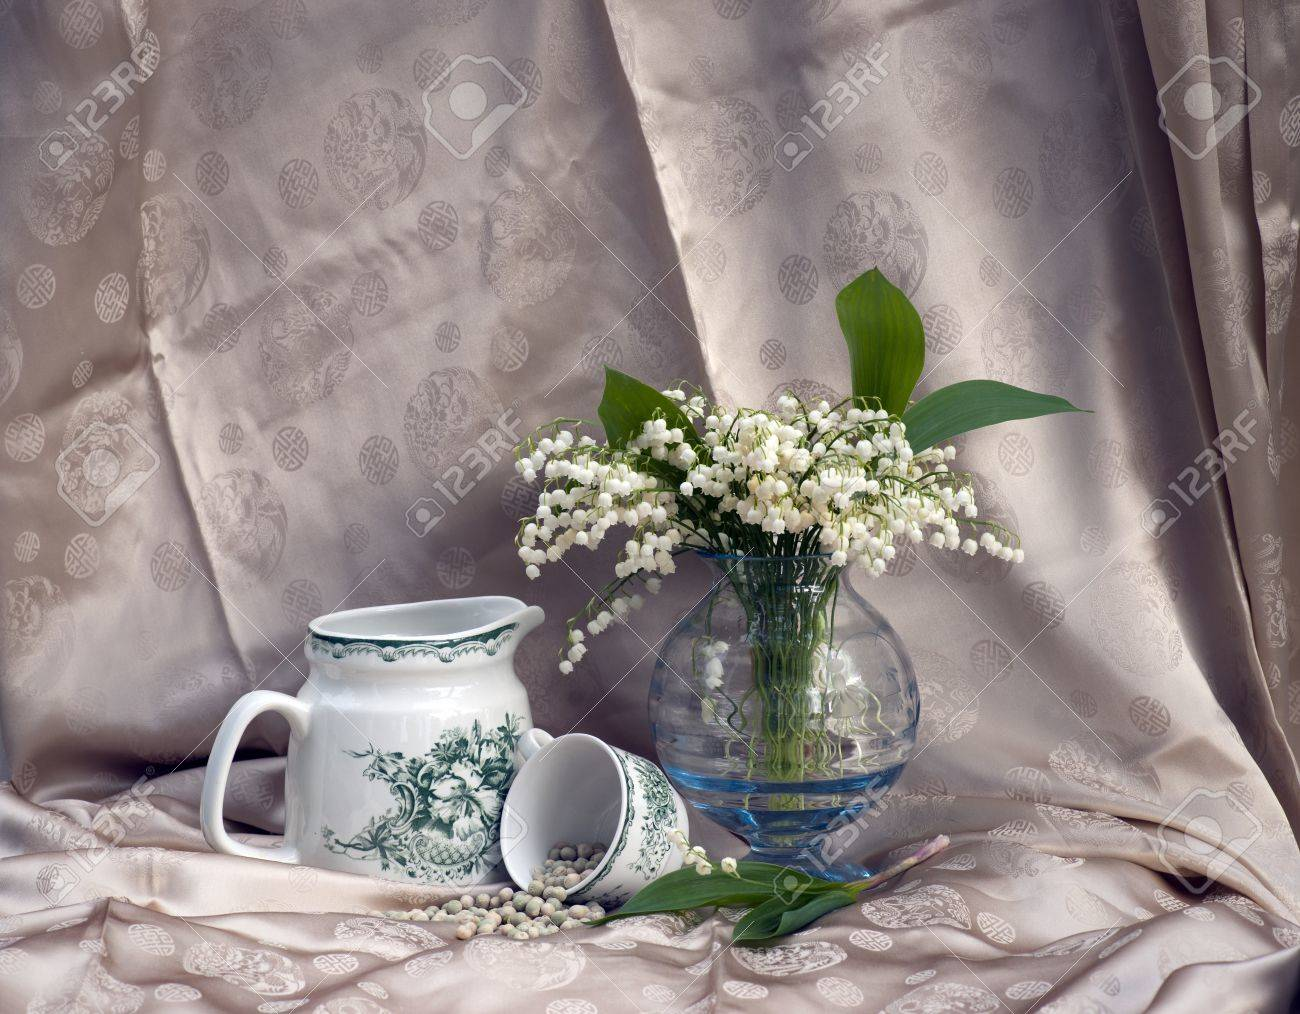 Still life with lily-of-the-valley flowers in a vase Stock Photo - 9658137